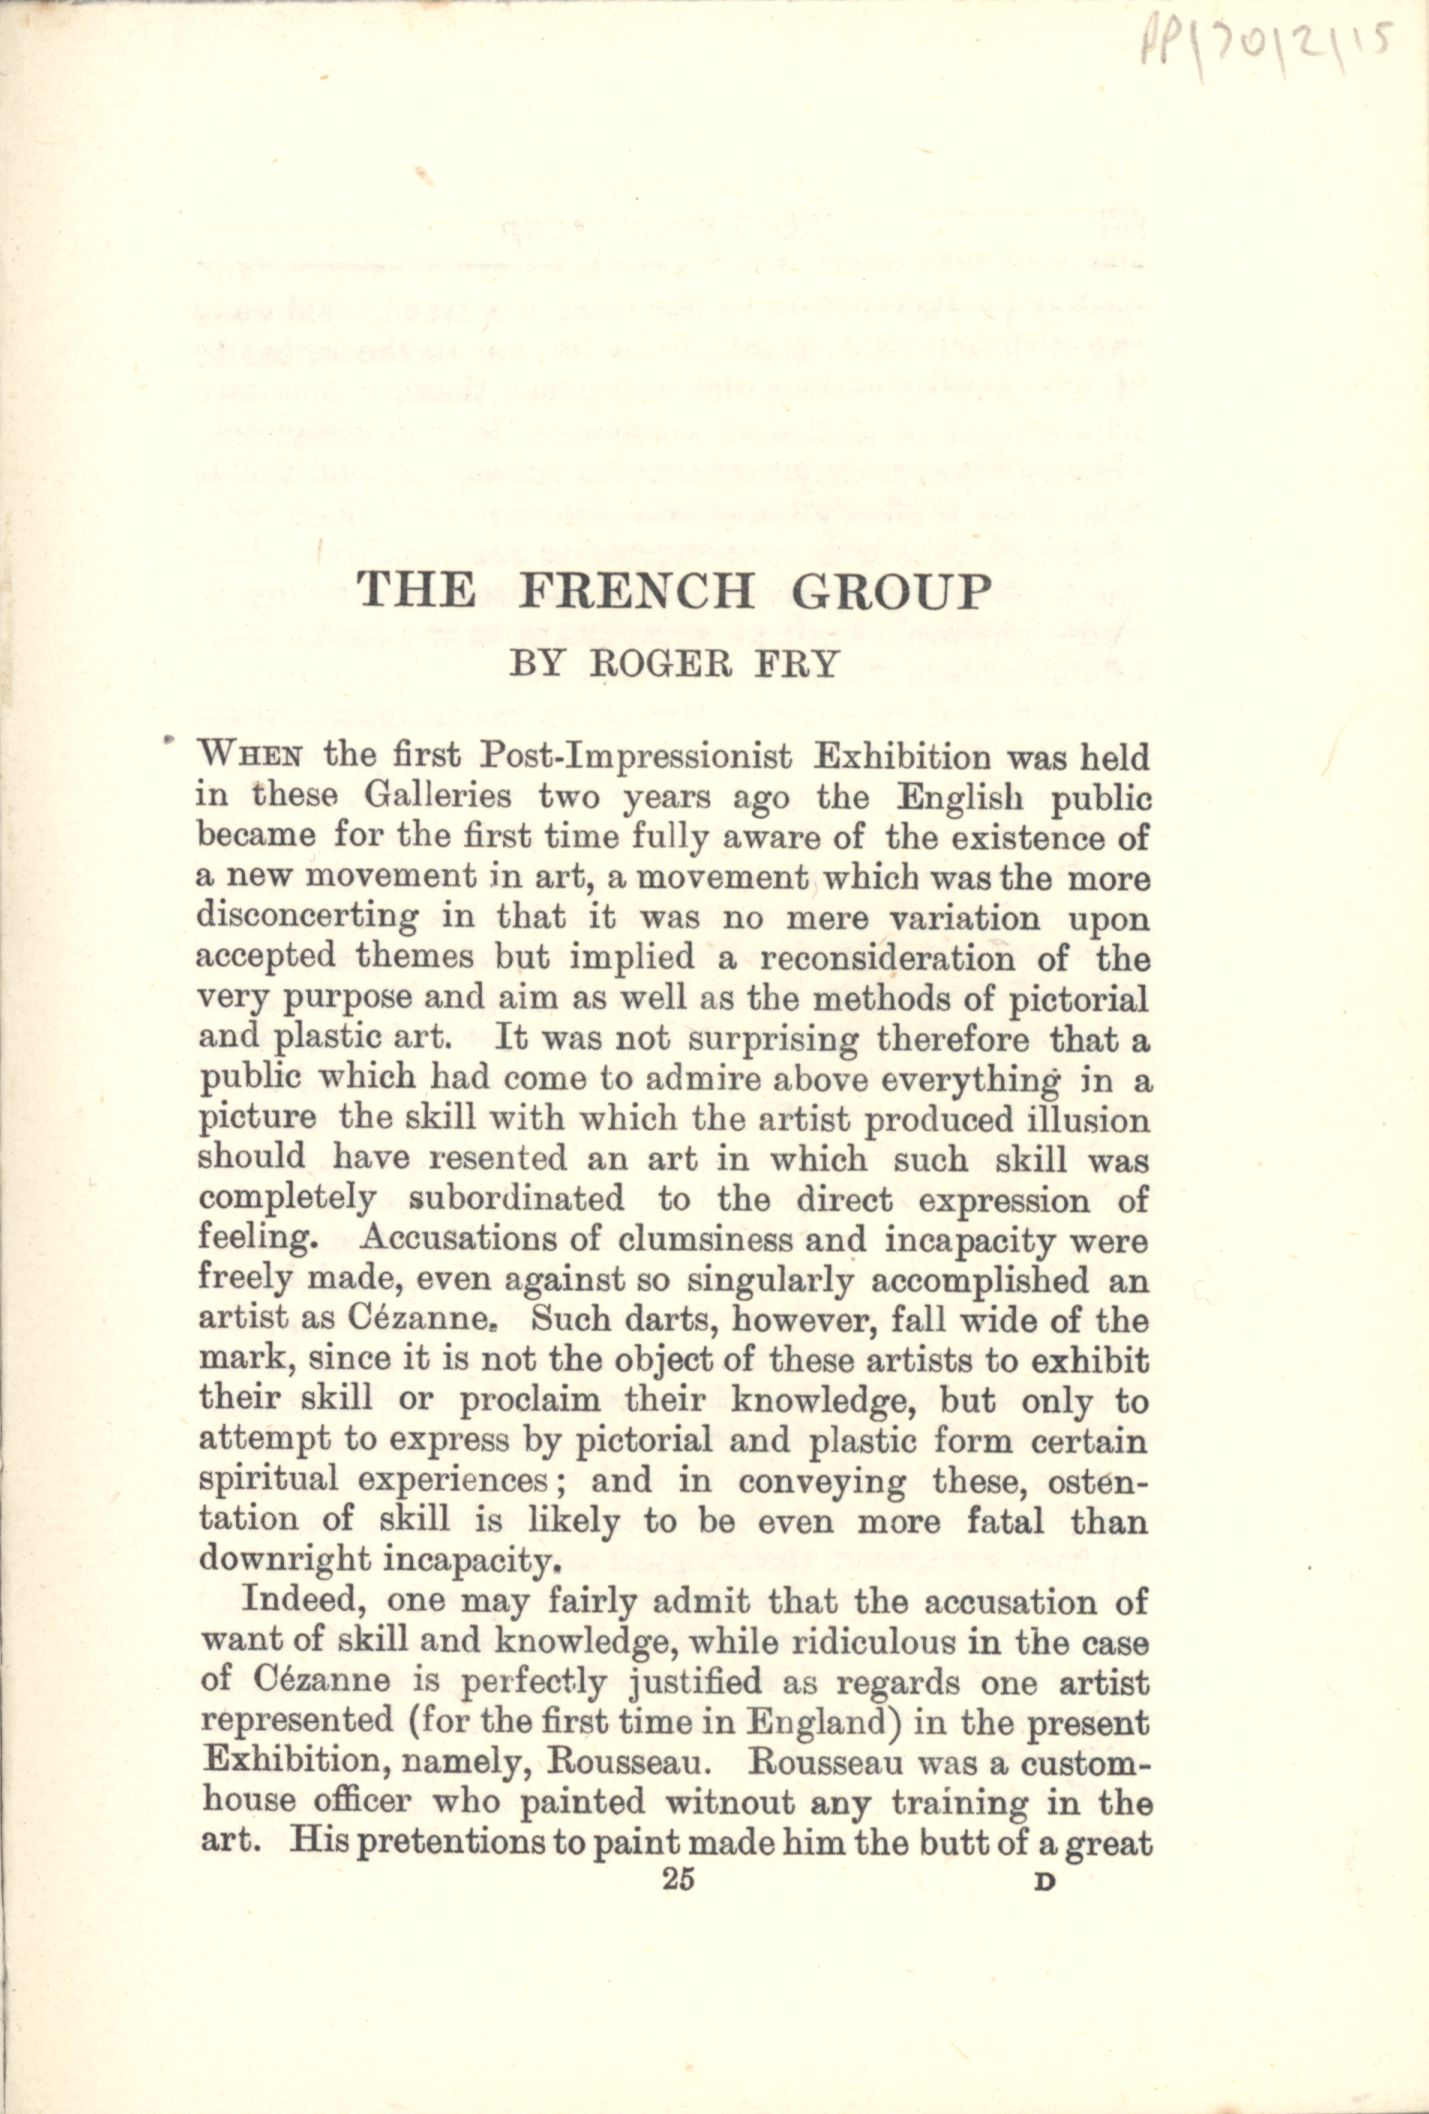 First page of the French Group in the 'Second Post-Impressionist Exhibition' catalogue. [JMK/PP/70/2]